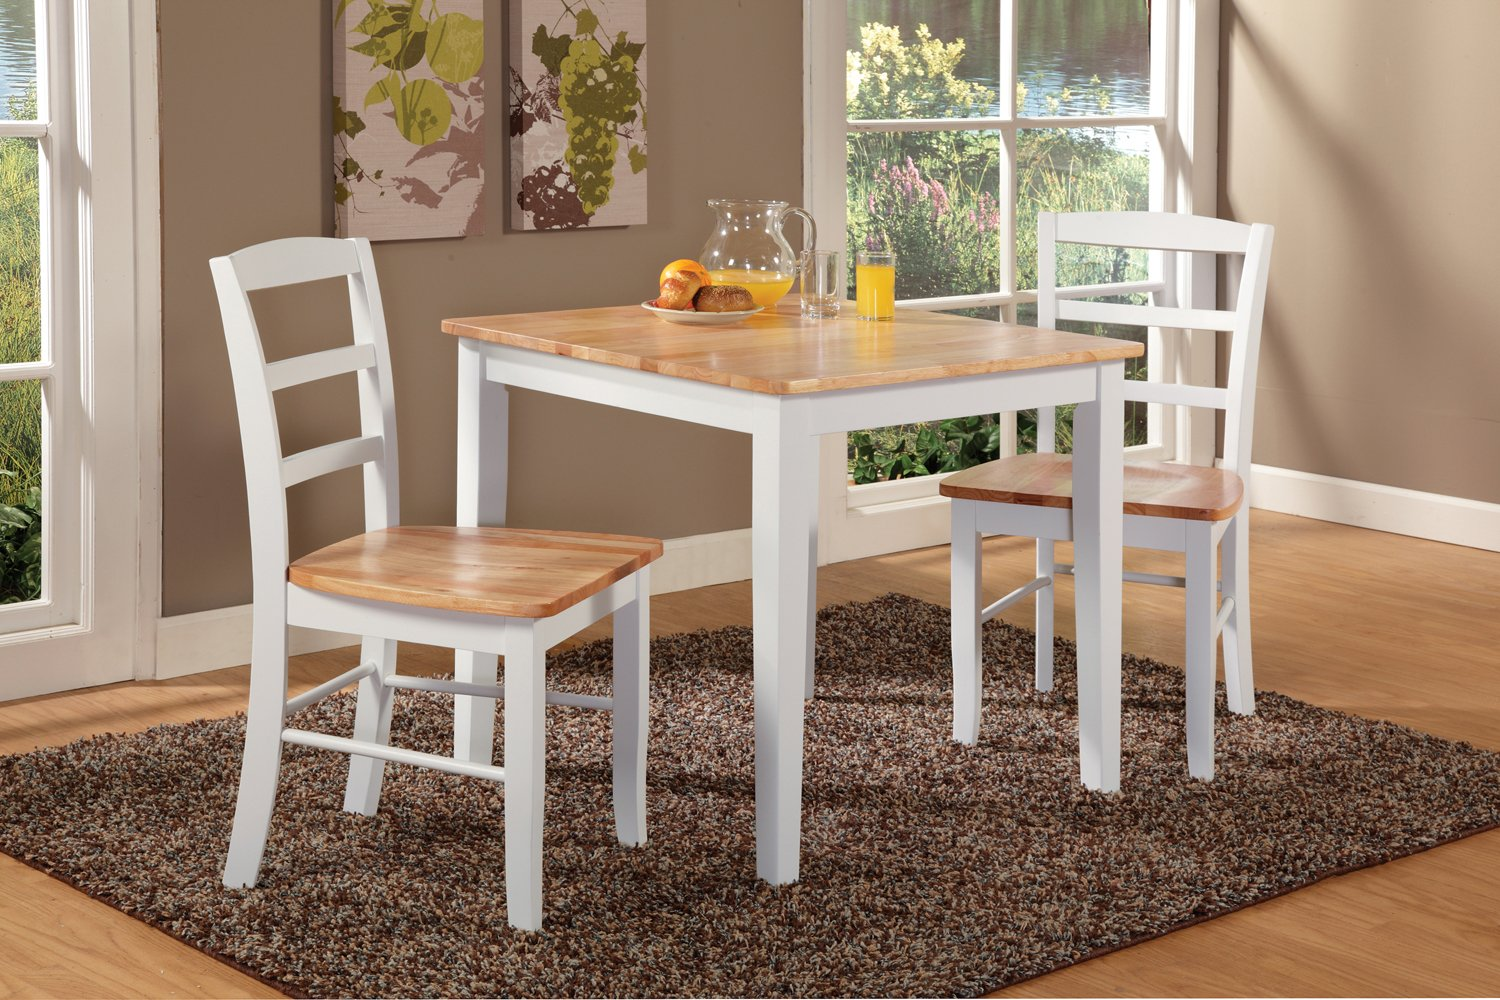 "International Concepts K02-3030-C2P-2 Dining Set, 30"", White/Natural - Solid wood dining table and two chairs Chair features box seat construction Table features shaker style legs and a butcher block top - kitchen-dining-room-furniture, kitchen-dining-room, dining-sets - 81Jy9yPZ45L -"